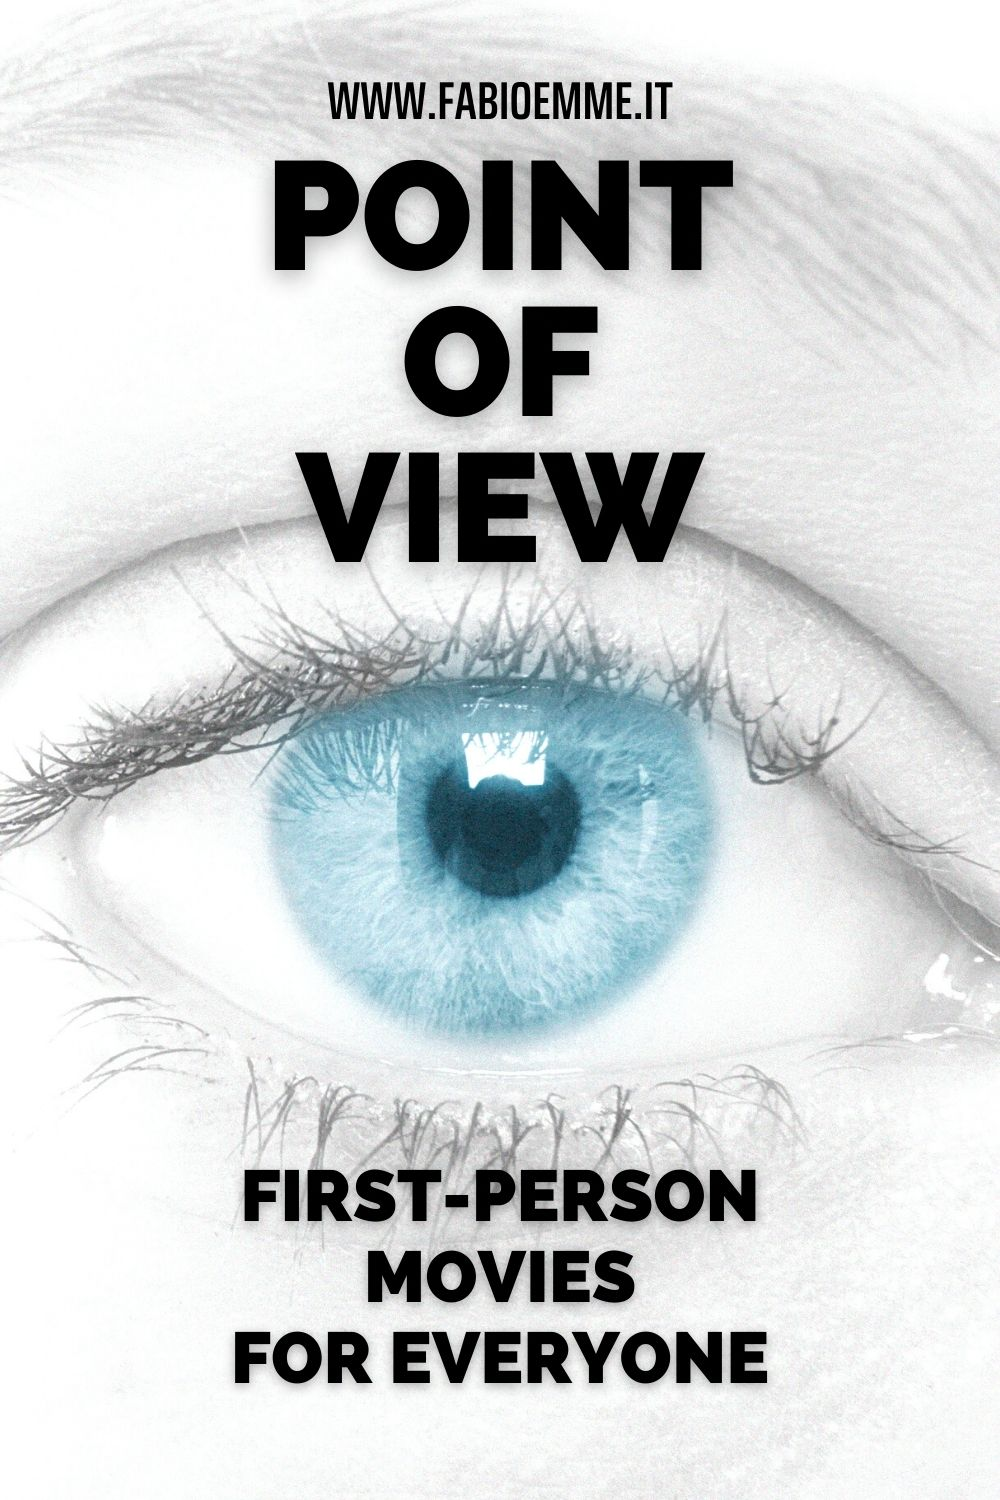 Entering the protagonists' eyes has always been the best point of view as first-person involvement examples for the viewer. #MOVIES